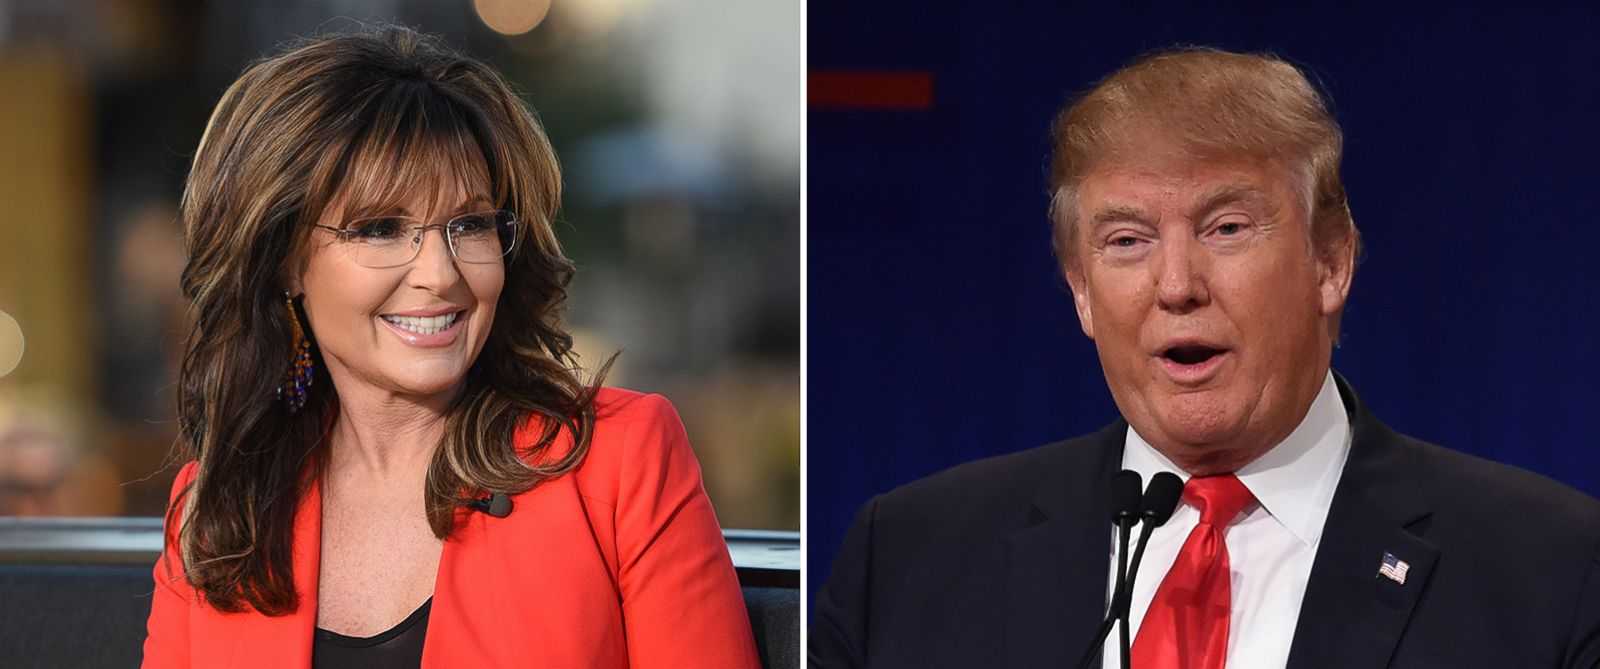 PHOTO: Sarah Palin and Donald Trump.